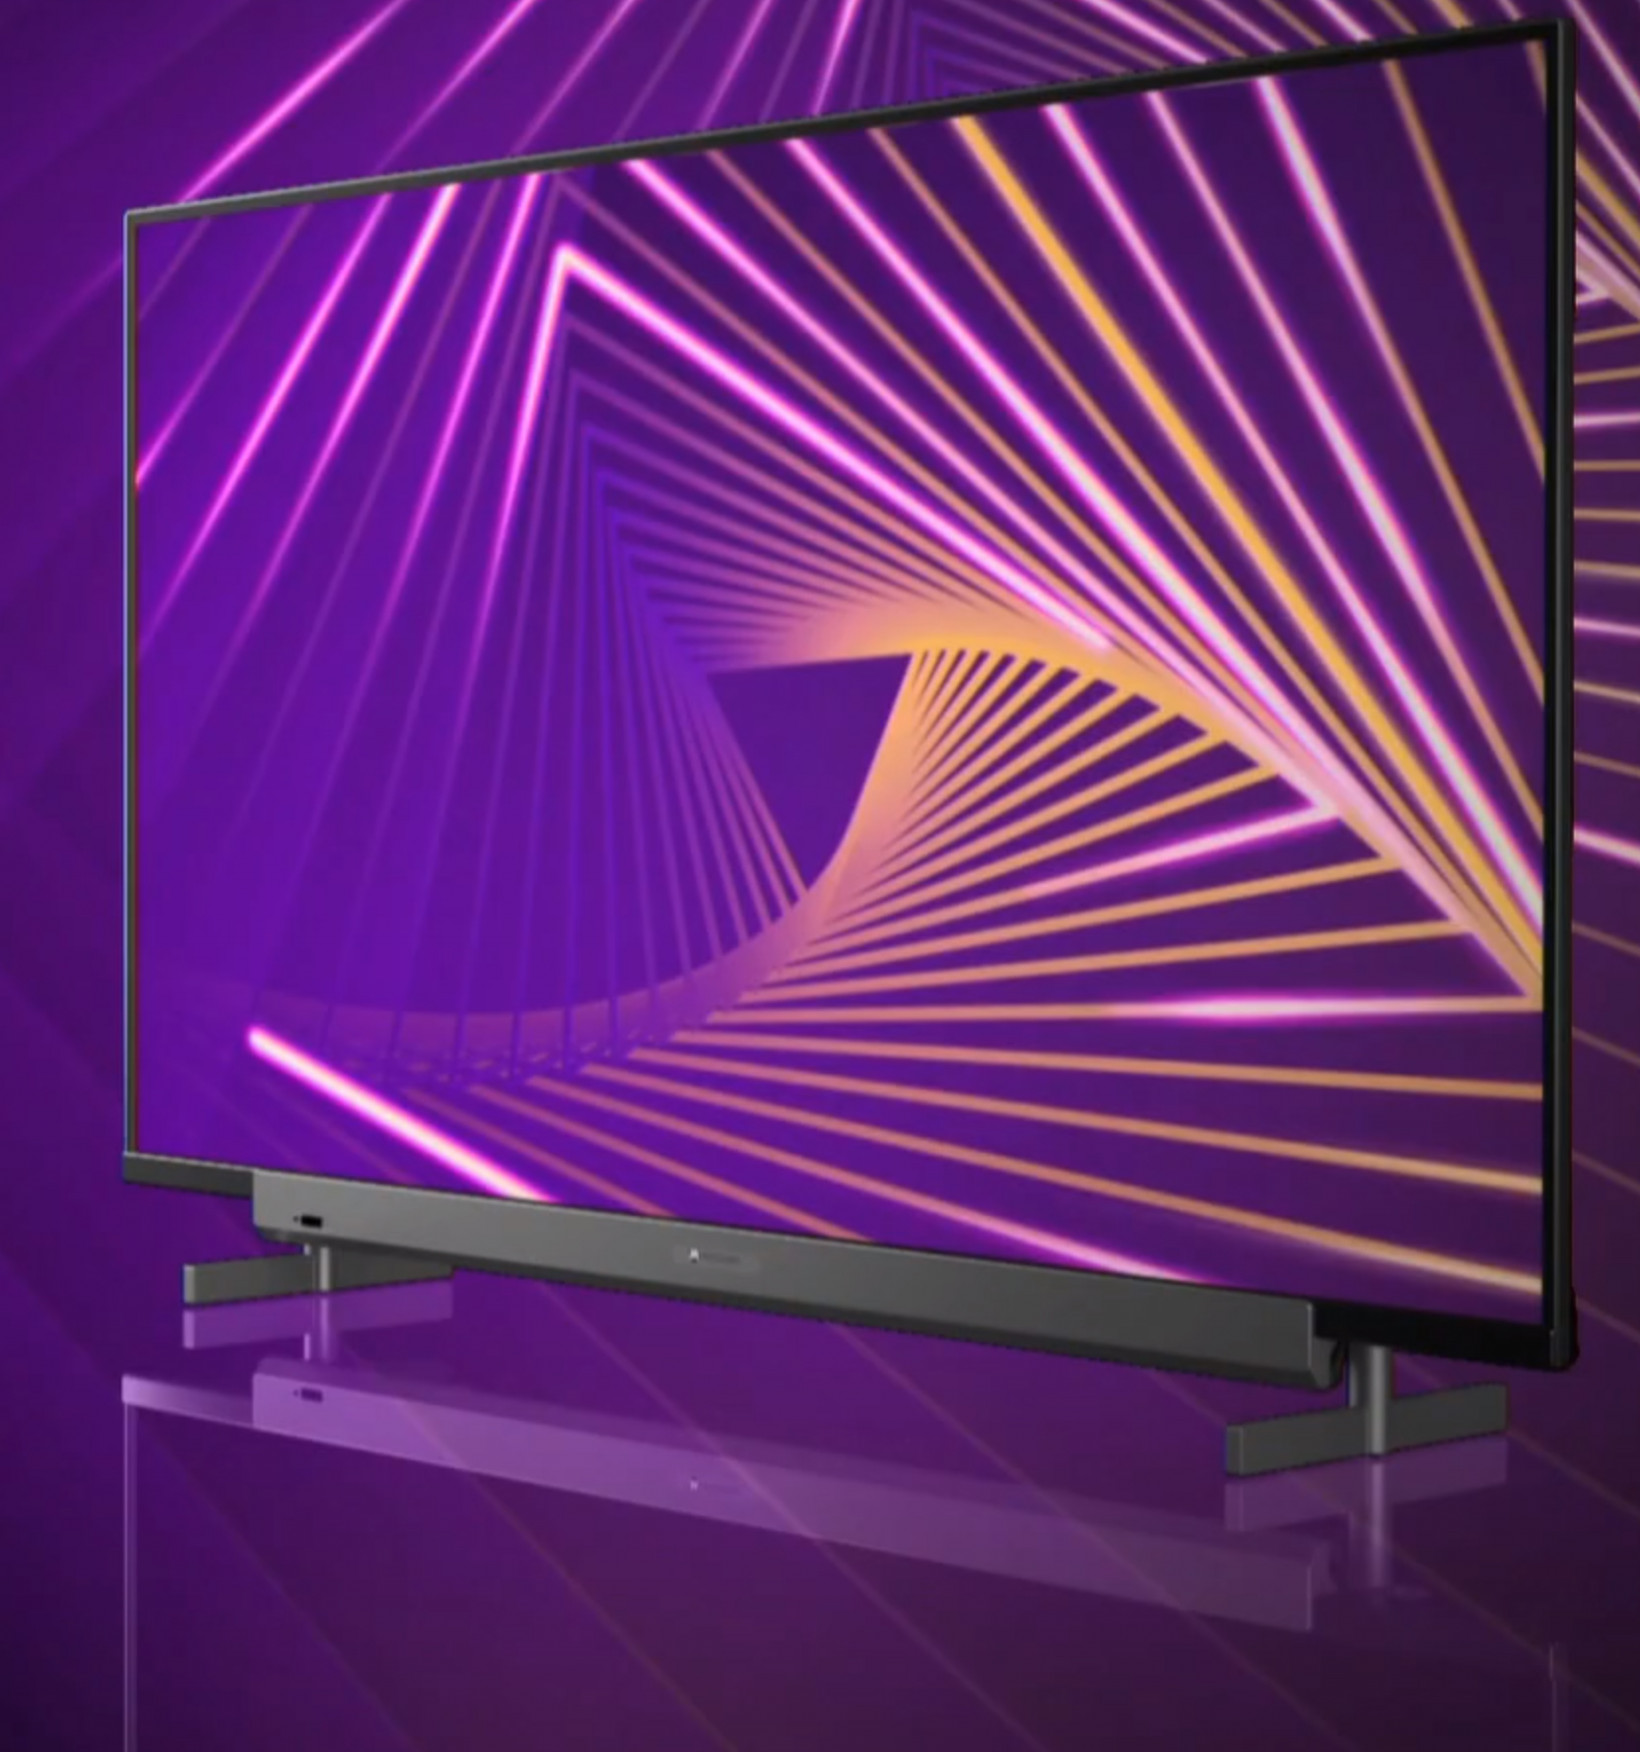 Motorola's first smart TV boasts an IPS panel and 30W front-facing speakers